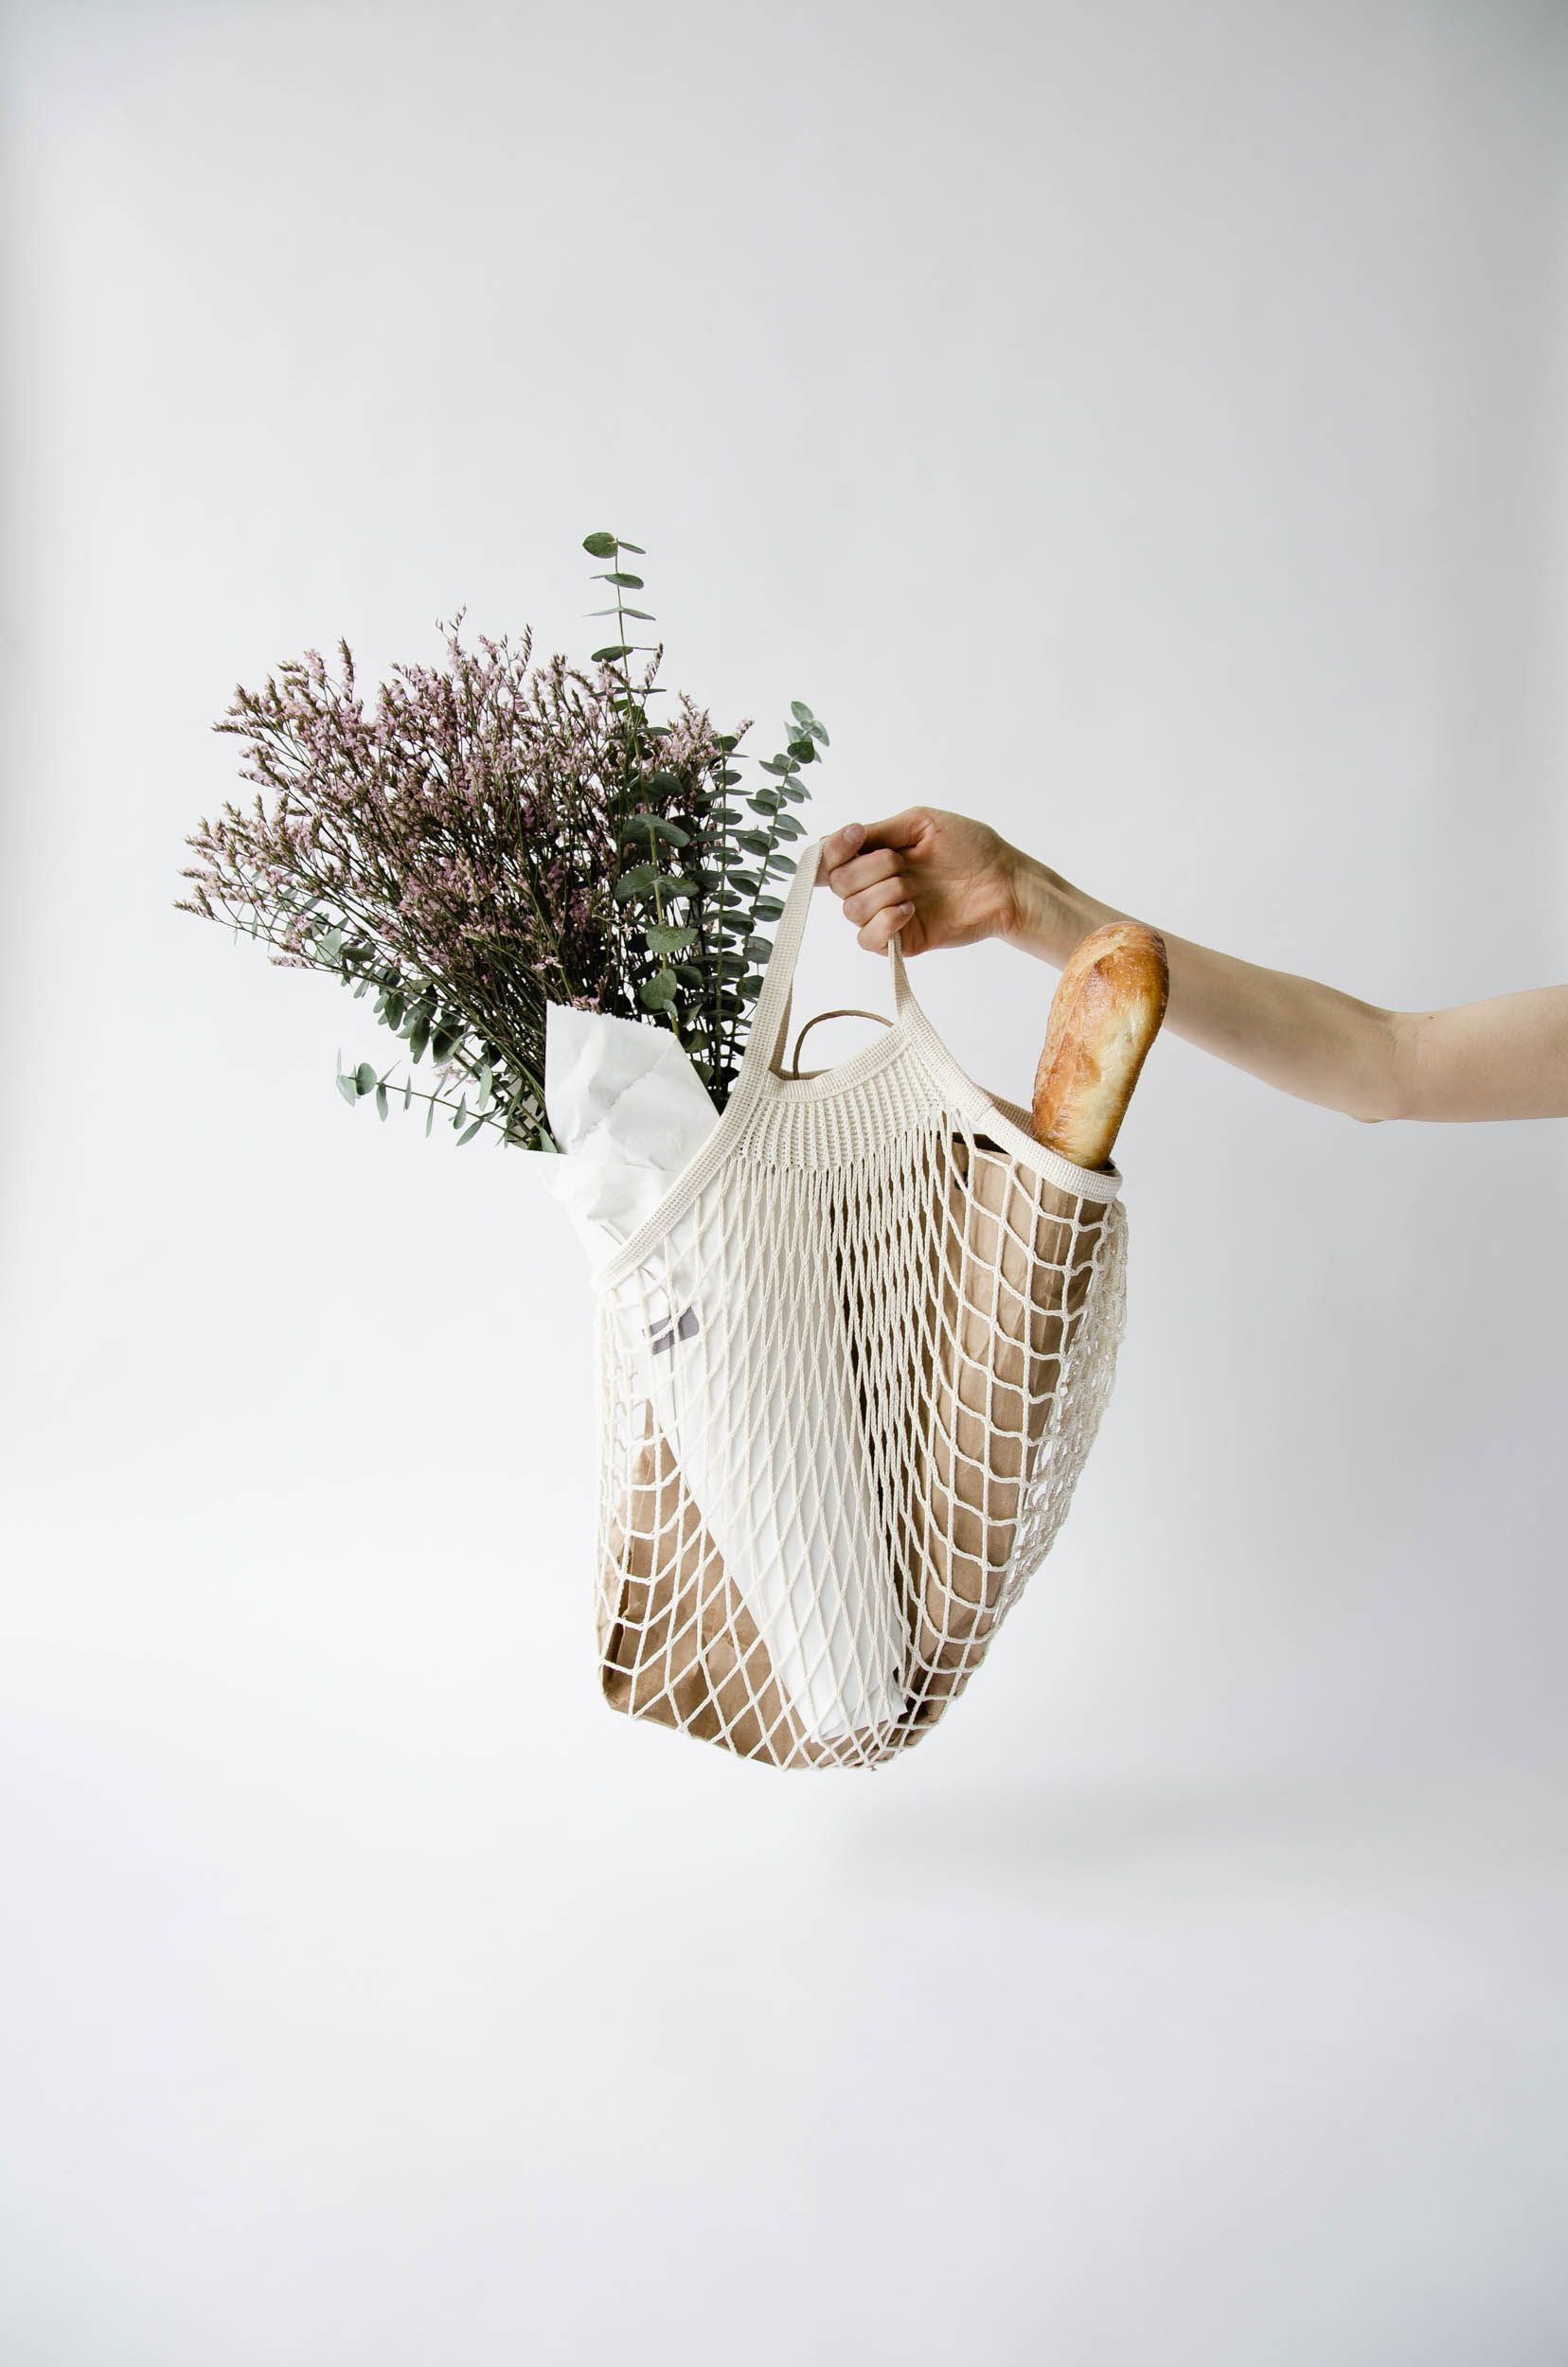 can you put herbs in small plastic bags for rituals